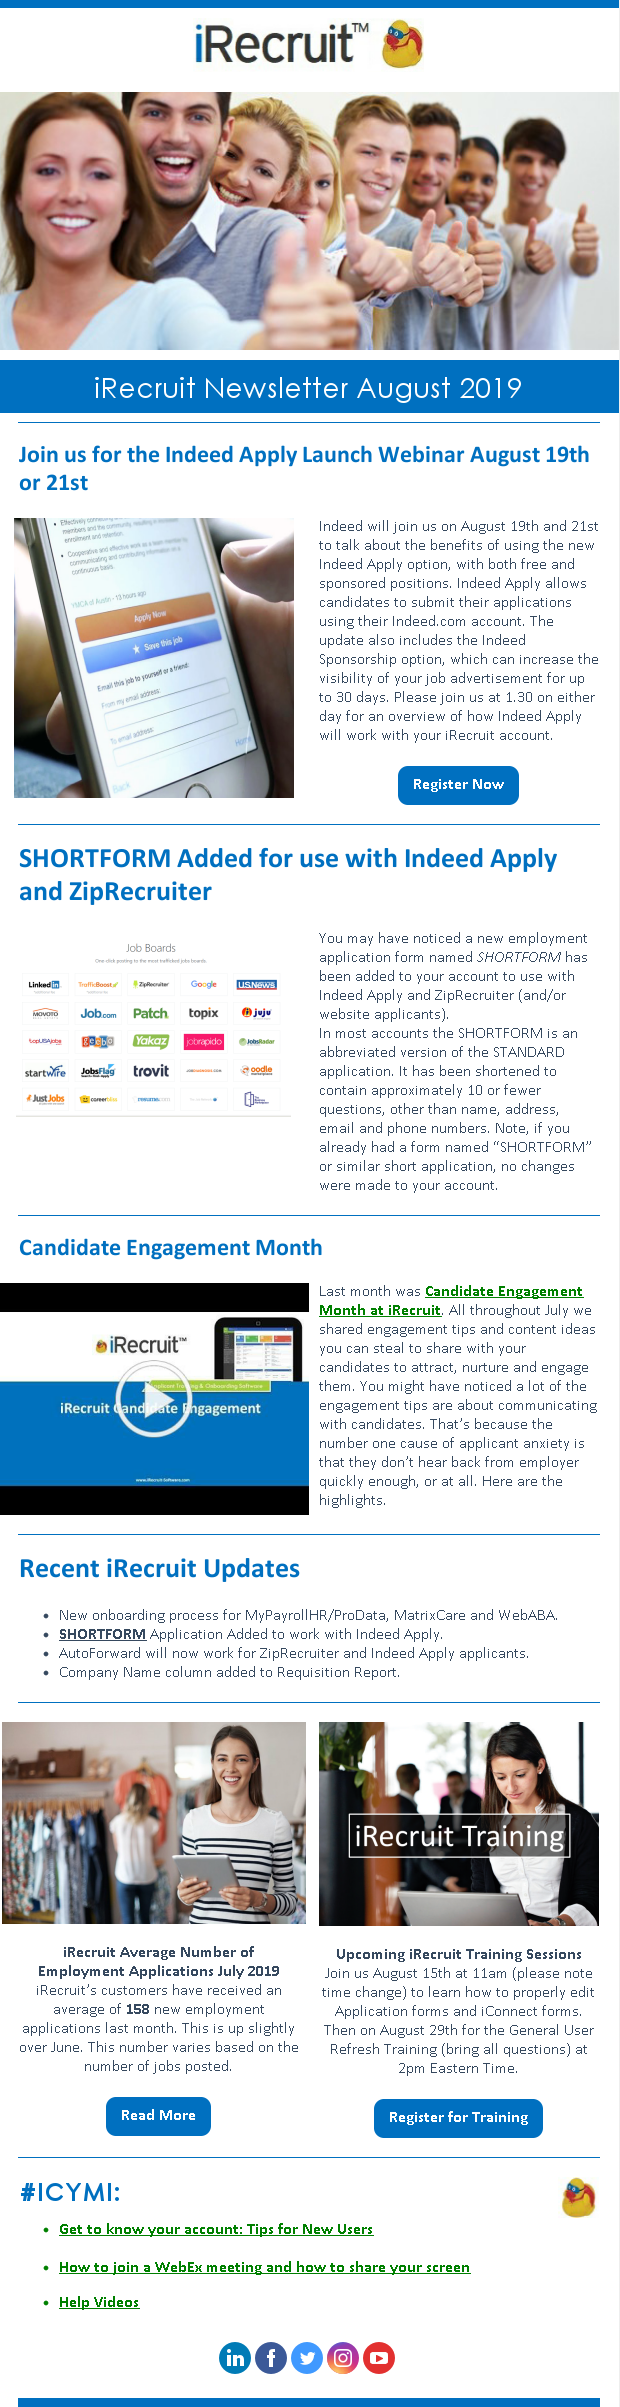 iRecruit Customer Newsletter August 2019